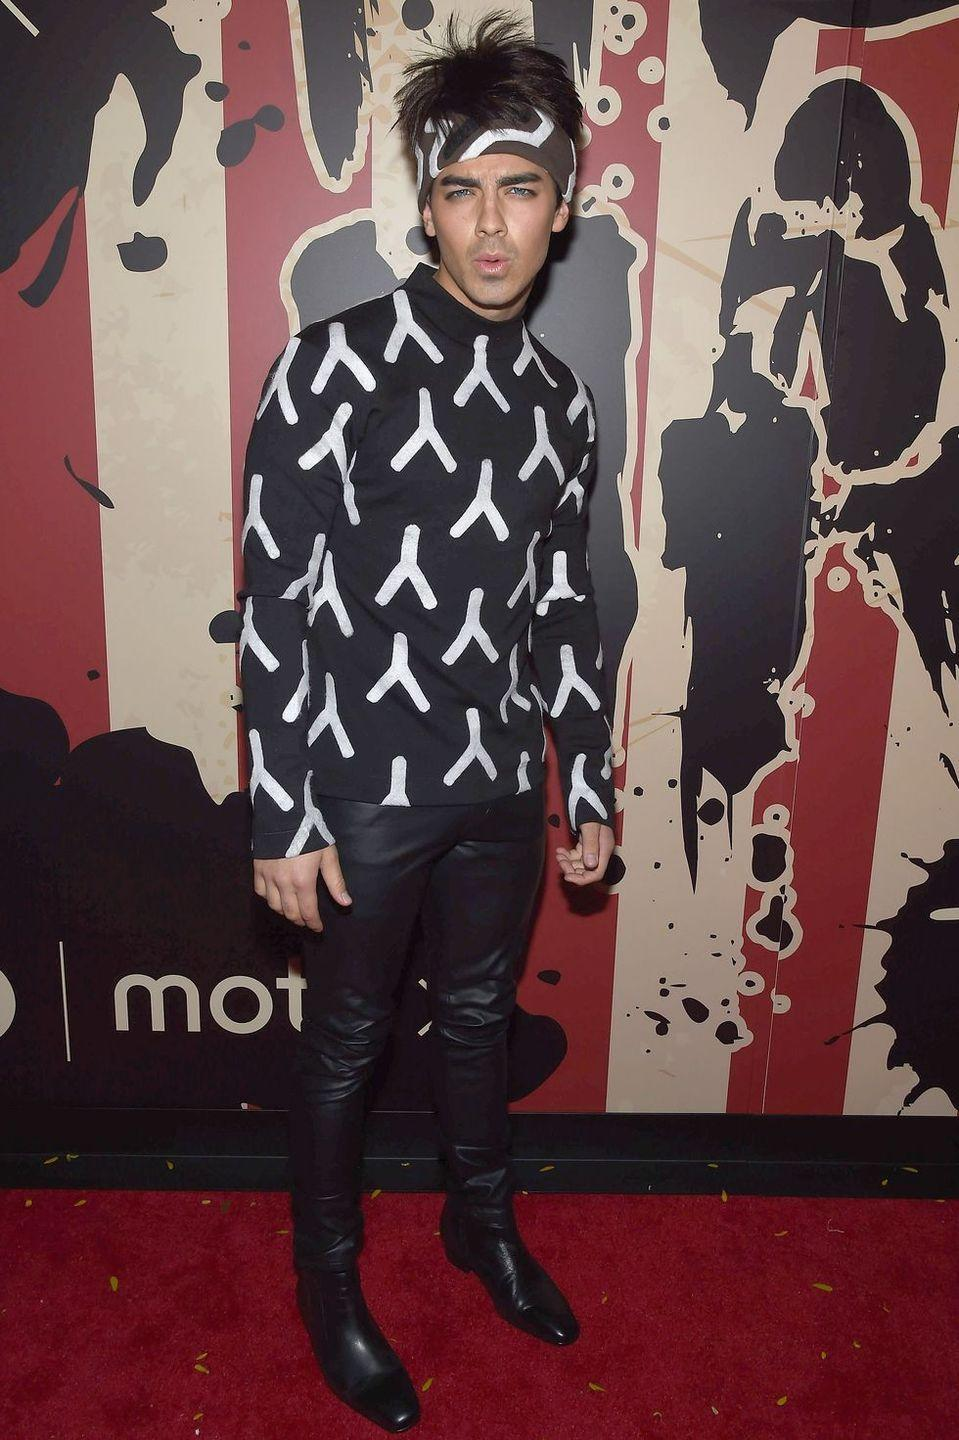 """<p>Tight leather pants, pointy-toed shoes, and some Blue Steel attitude can turn anyone into Derek Zoolander.</p><p><strong>What You'll Need:</strong> <a href=""""https://www.amazon.com/Idopy-Men%60s-Black-Leather-Biker/dp/B01ALS93G2?tag=syn-yahoo-20&ascsubtag=%5Bartid%7C10070.g.28166042%5Bsrc%7Cyahoo-us"""" rel=""""nofollow noopener"""" target=""""_blank"""" data-ylk=""""slk:black leather pants"""" class=""""link rapid-noclick-resp"""">black leather pants</a>, <a href=""""https://www.amazon.com/COOFANDY-Floral-Button-Casual-Hawaiian/dp/B07TTNCNPT?tag=syn-yahoo-20&ascsubtag=%5Bartid%7C10070.g.28166042%5Bsrc%7Cyahoo-us"""" rel=""""nofollow noopener"""" target=""""_blank"""" data-ylk=""""slk:print shirt"""" class=""""link rapid-noclick-resp"""">print shirt</a>, and <a href=""""https://www.amazon.com/Polyester-Feeling-Wrapping-Zinnwaldite-Paisley/dp/B07R7N2PNY?tag=syn-yahoo-20&ascsubtag=%5Bartid%7C10070.g.28166042%5Bsrc%7Cyahoo-us"""" rel=""""nofollow noopener"""" target=""""_blank"""" data-ylk=""""slk:print head scarf"""" class=""""link rapid-noclick-resp"""">print head scarf</a></p>"""